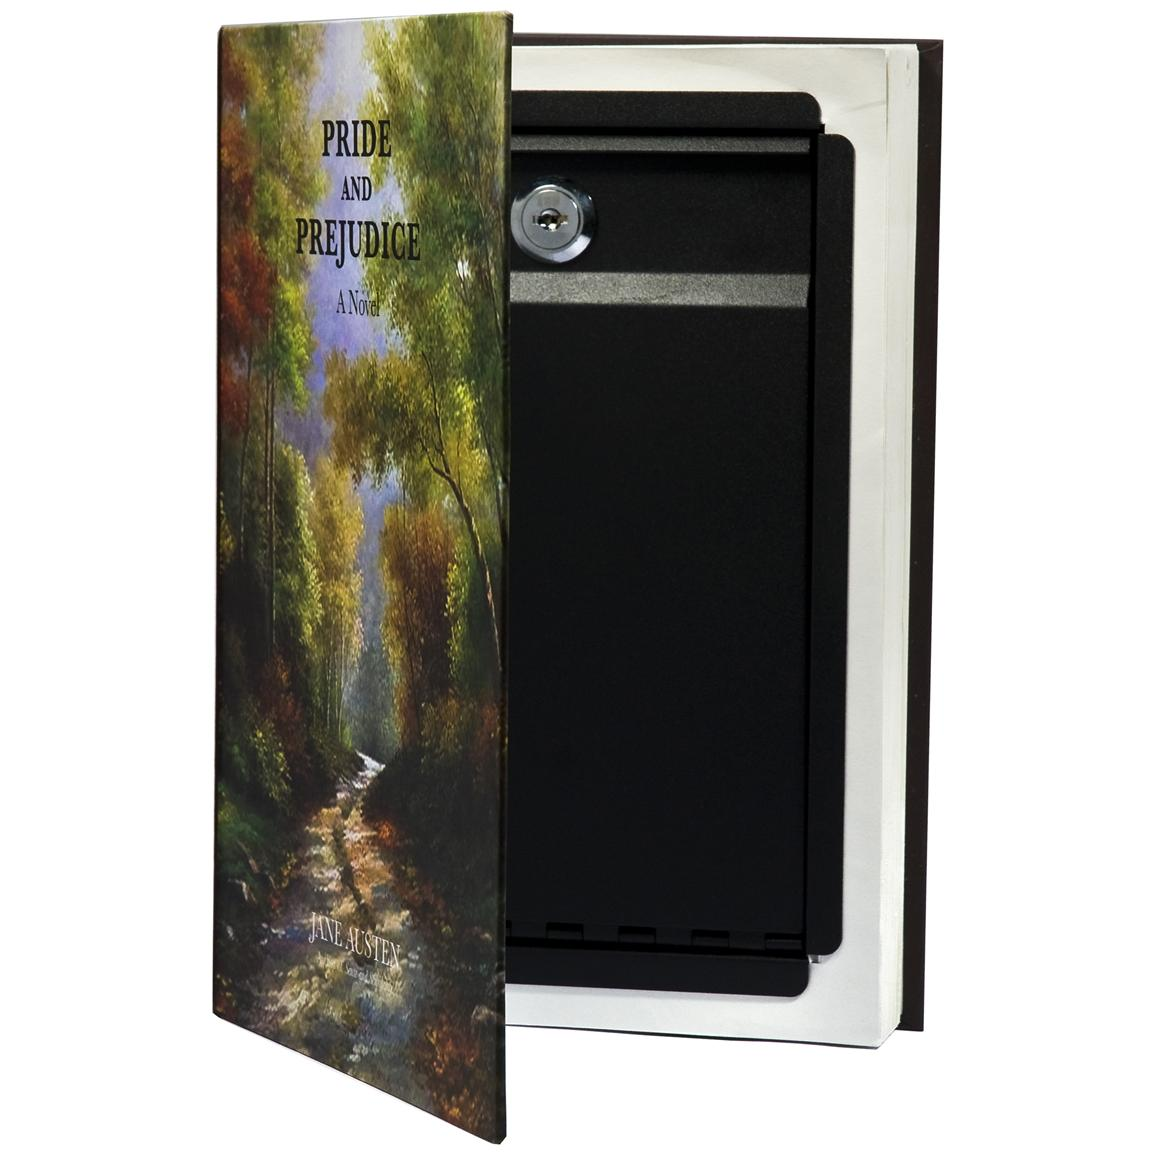 On the inside, it's a strong, compact steel safe with key-lock entry... perfect for storing money, passports and jewelry